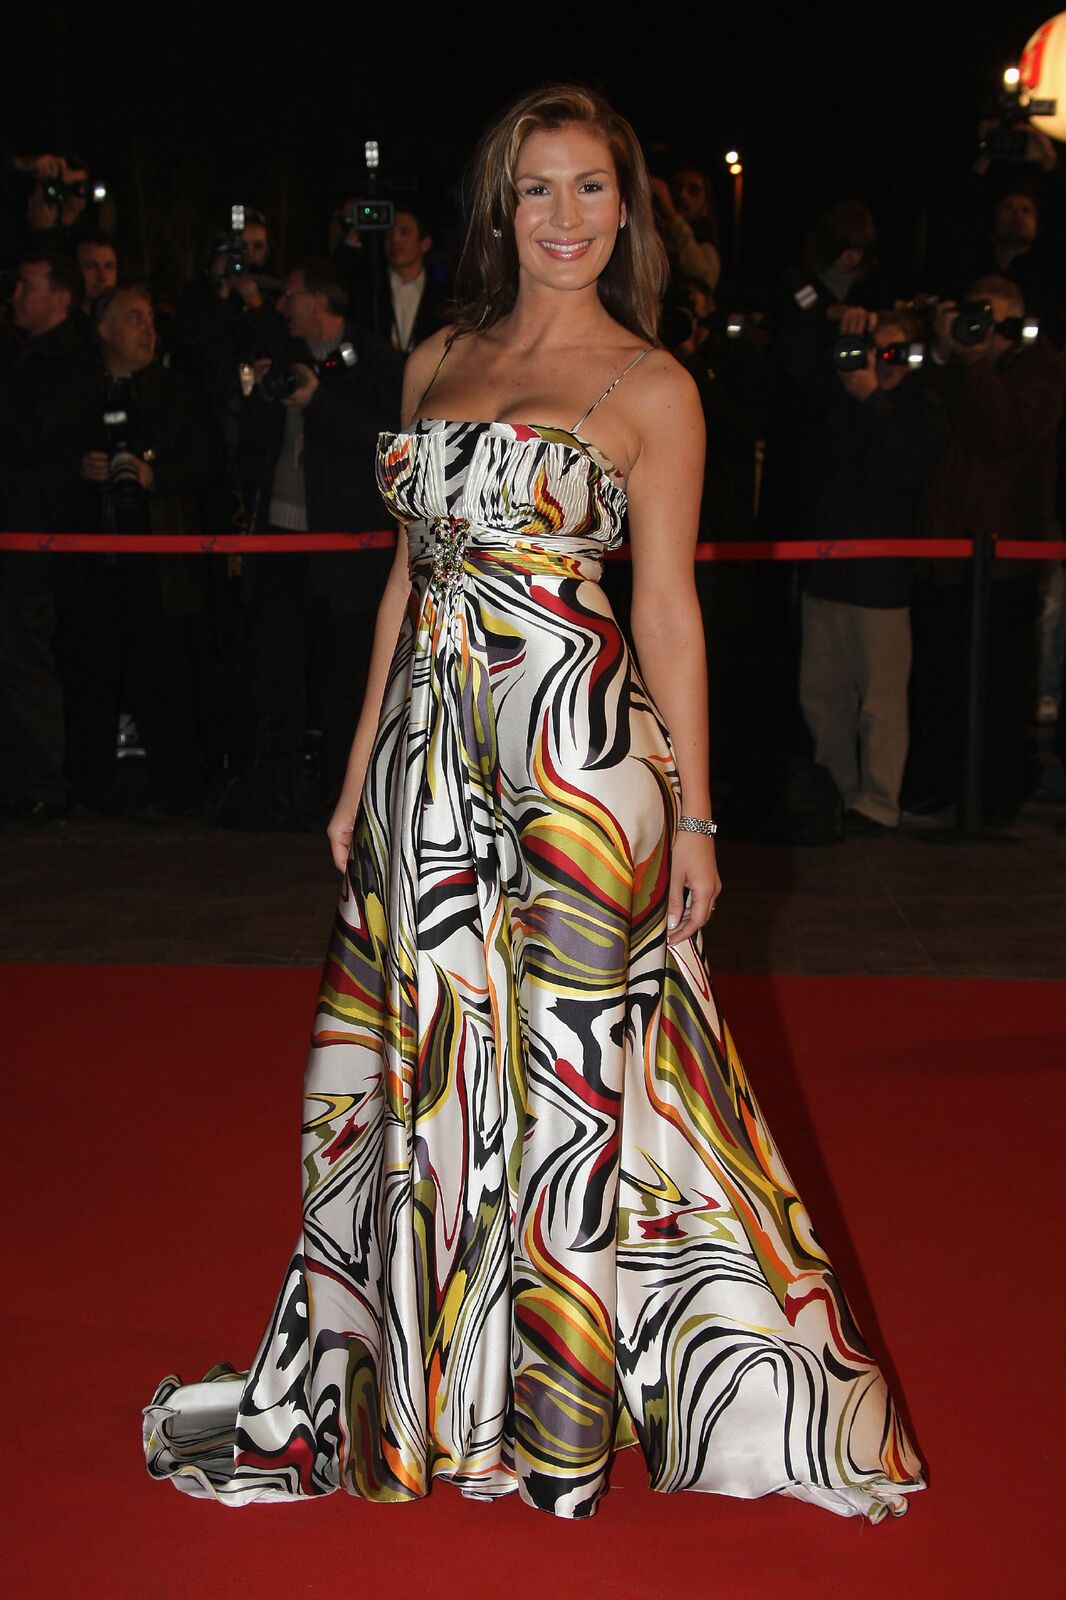 Vitaa assiste aux NRJ Music Awards 2008 le 26 janvier 2008 à Cannes, France. | Photo : Getty Images